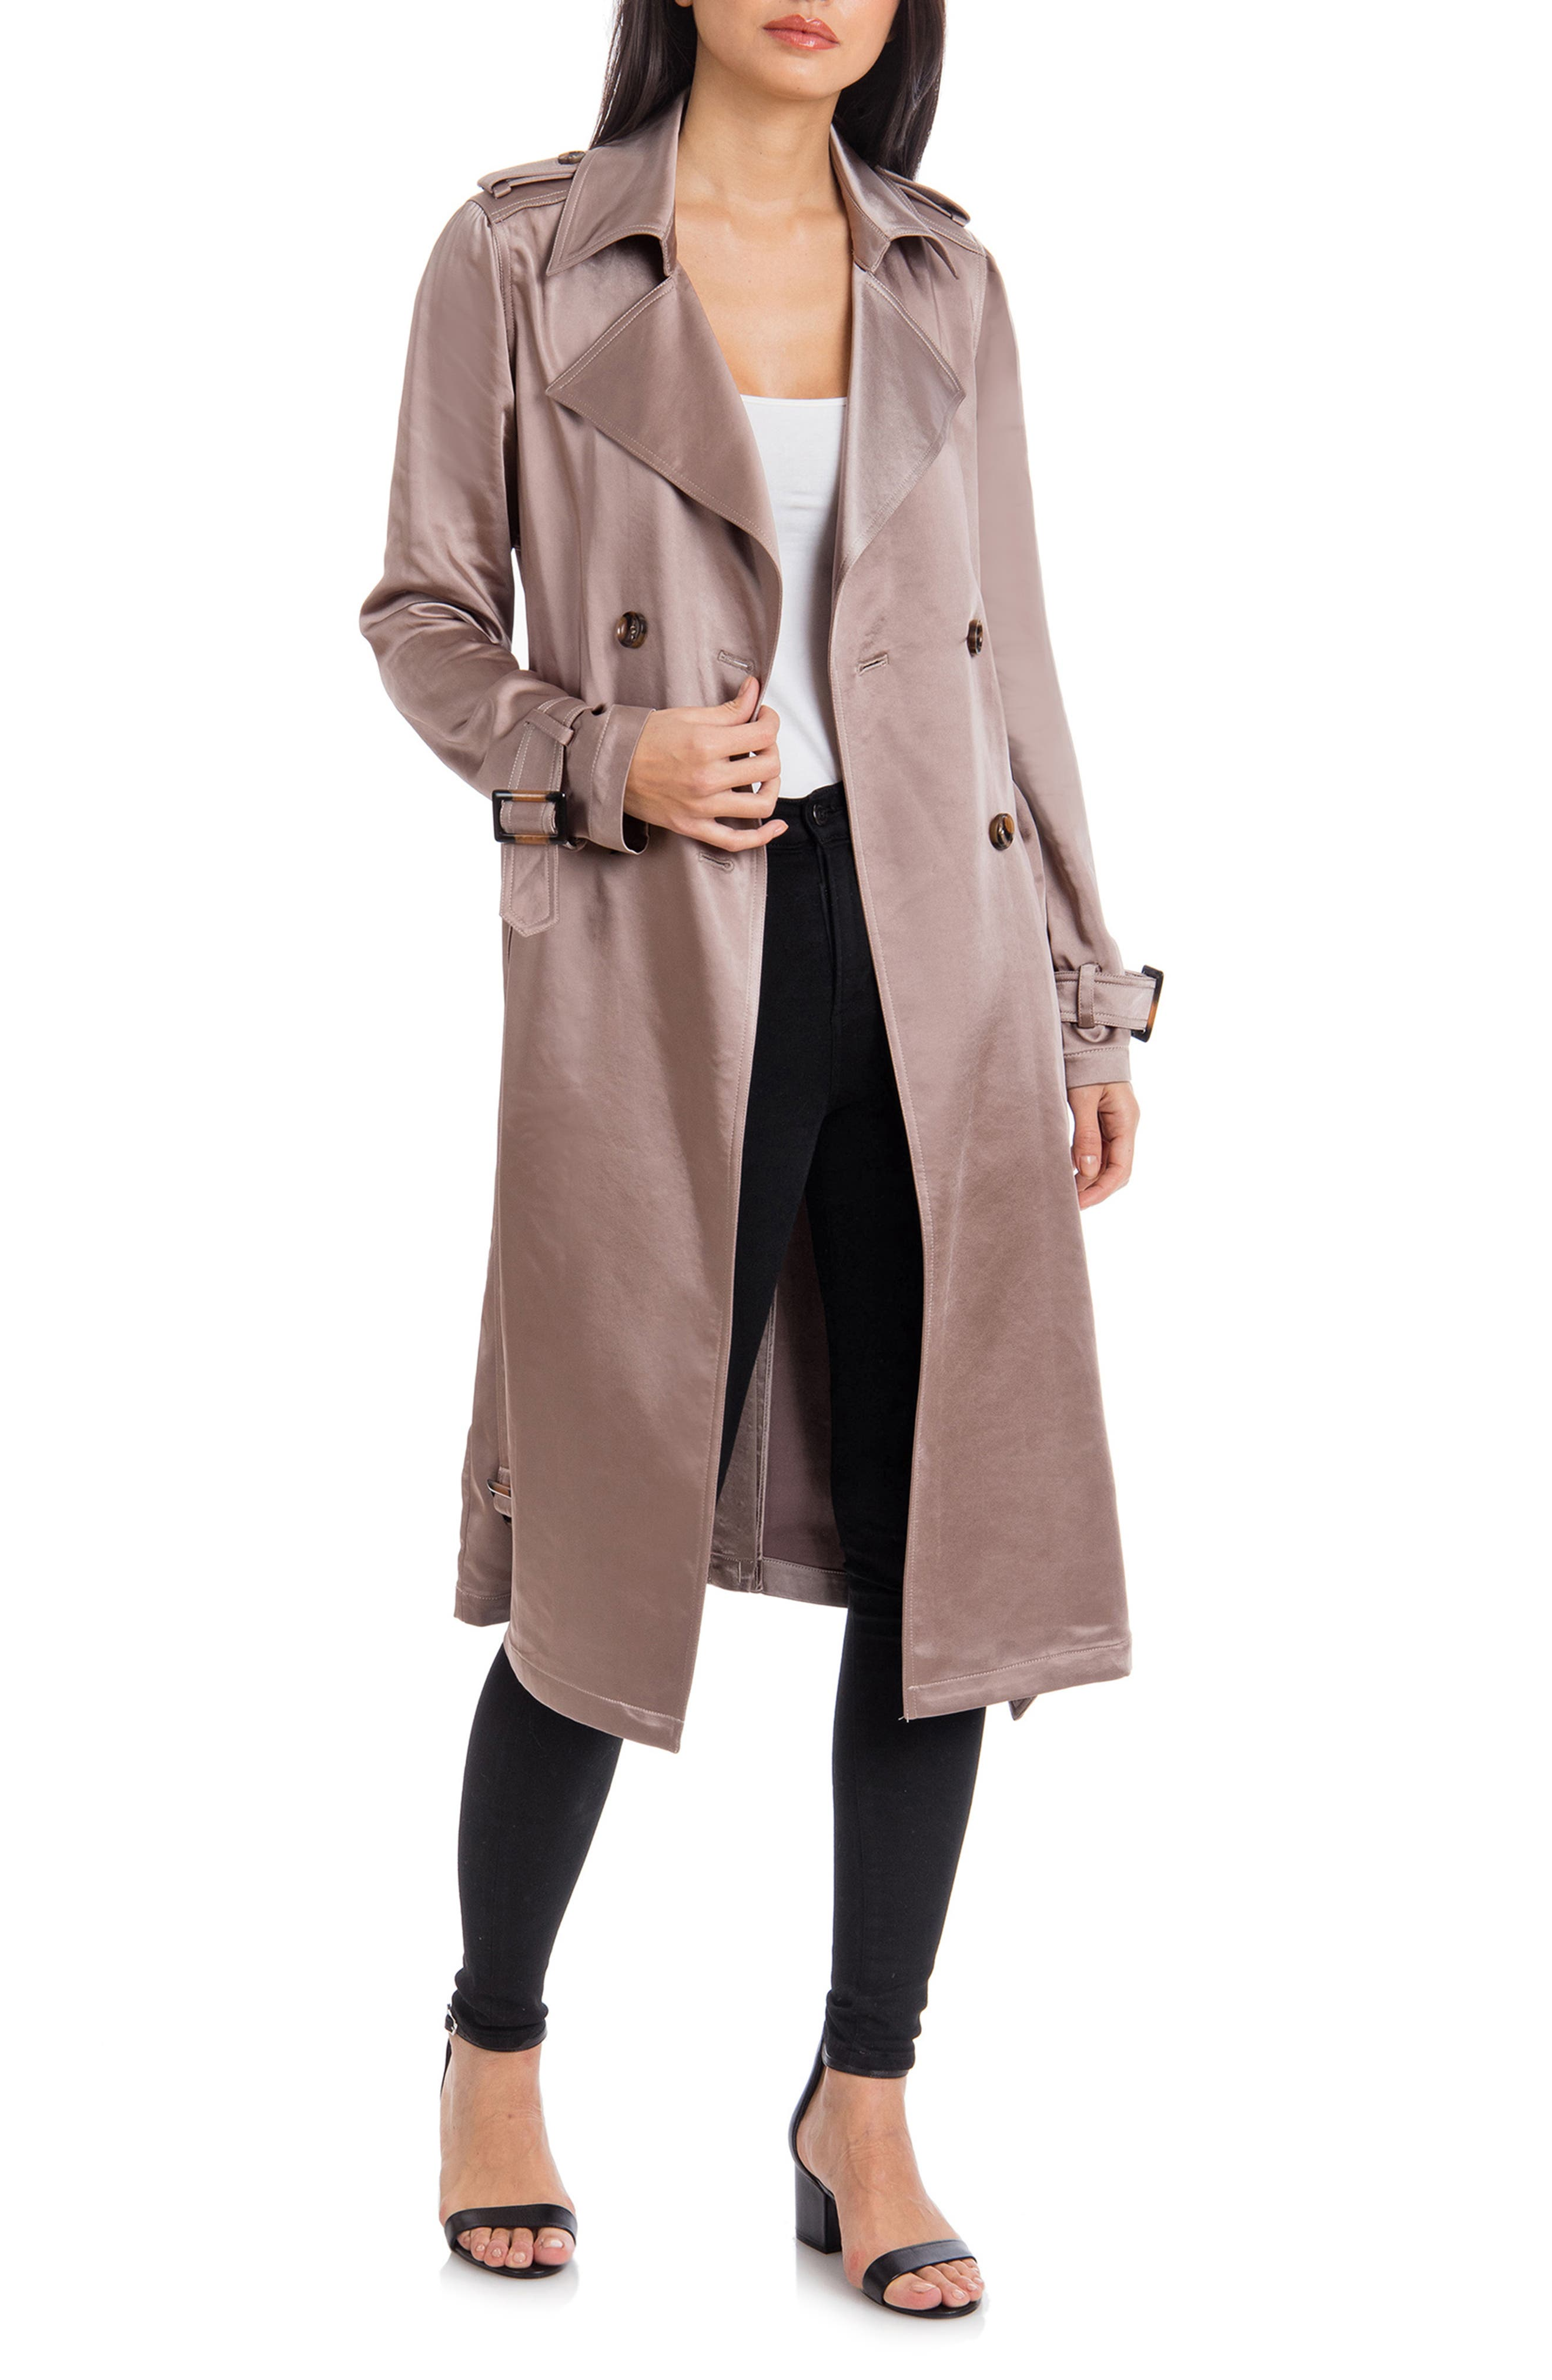 BADGLEY MISCHKA COLLECTION Badgley Mischka Double Breasted Satin Trench Coat, Main, color, TAUPE